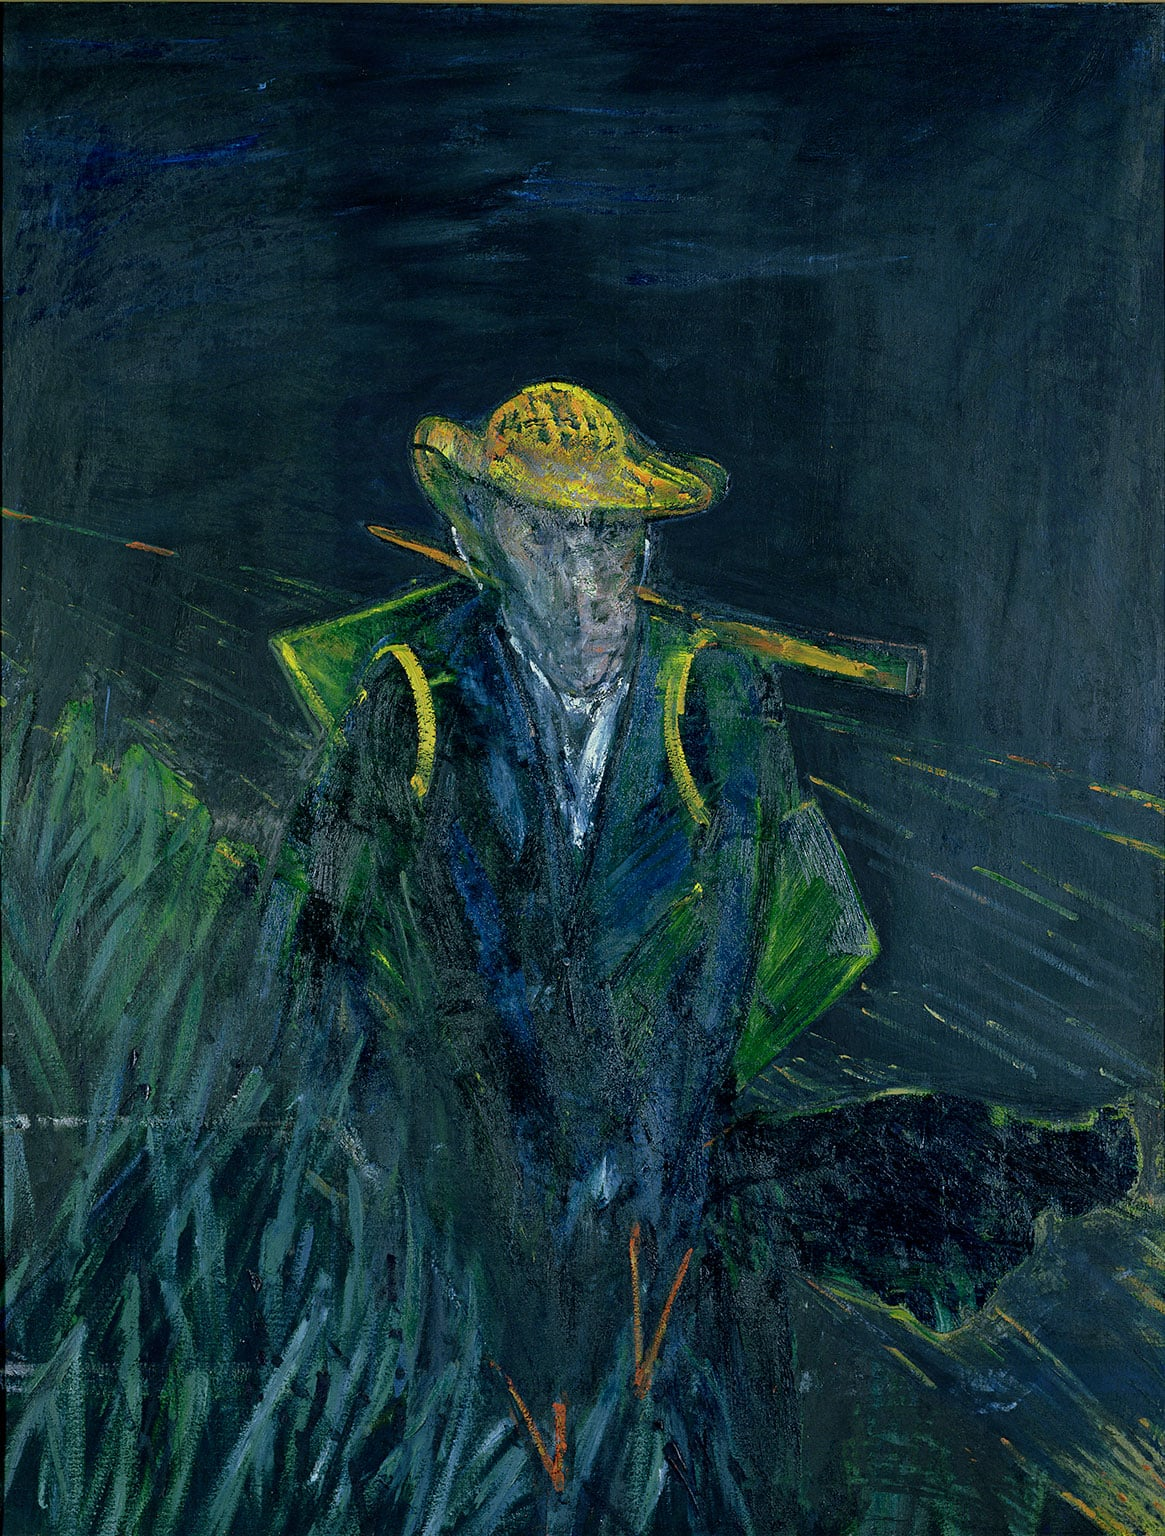 4. Francis Bacon and the Masters, Sainsbury Centre for Visual Arts. 50% off with National Art Pass - Francis Bacon, Study for a Portrait of Van Gogh I, 1956. © The Estate of Francis Bacon. All rights reserved. DACS 2014